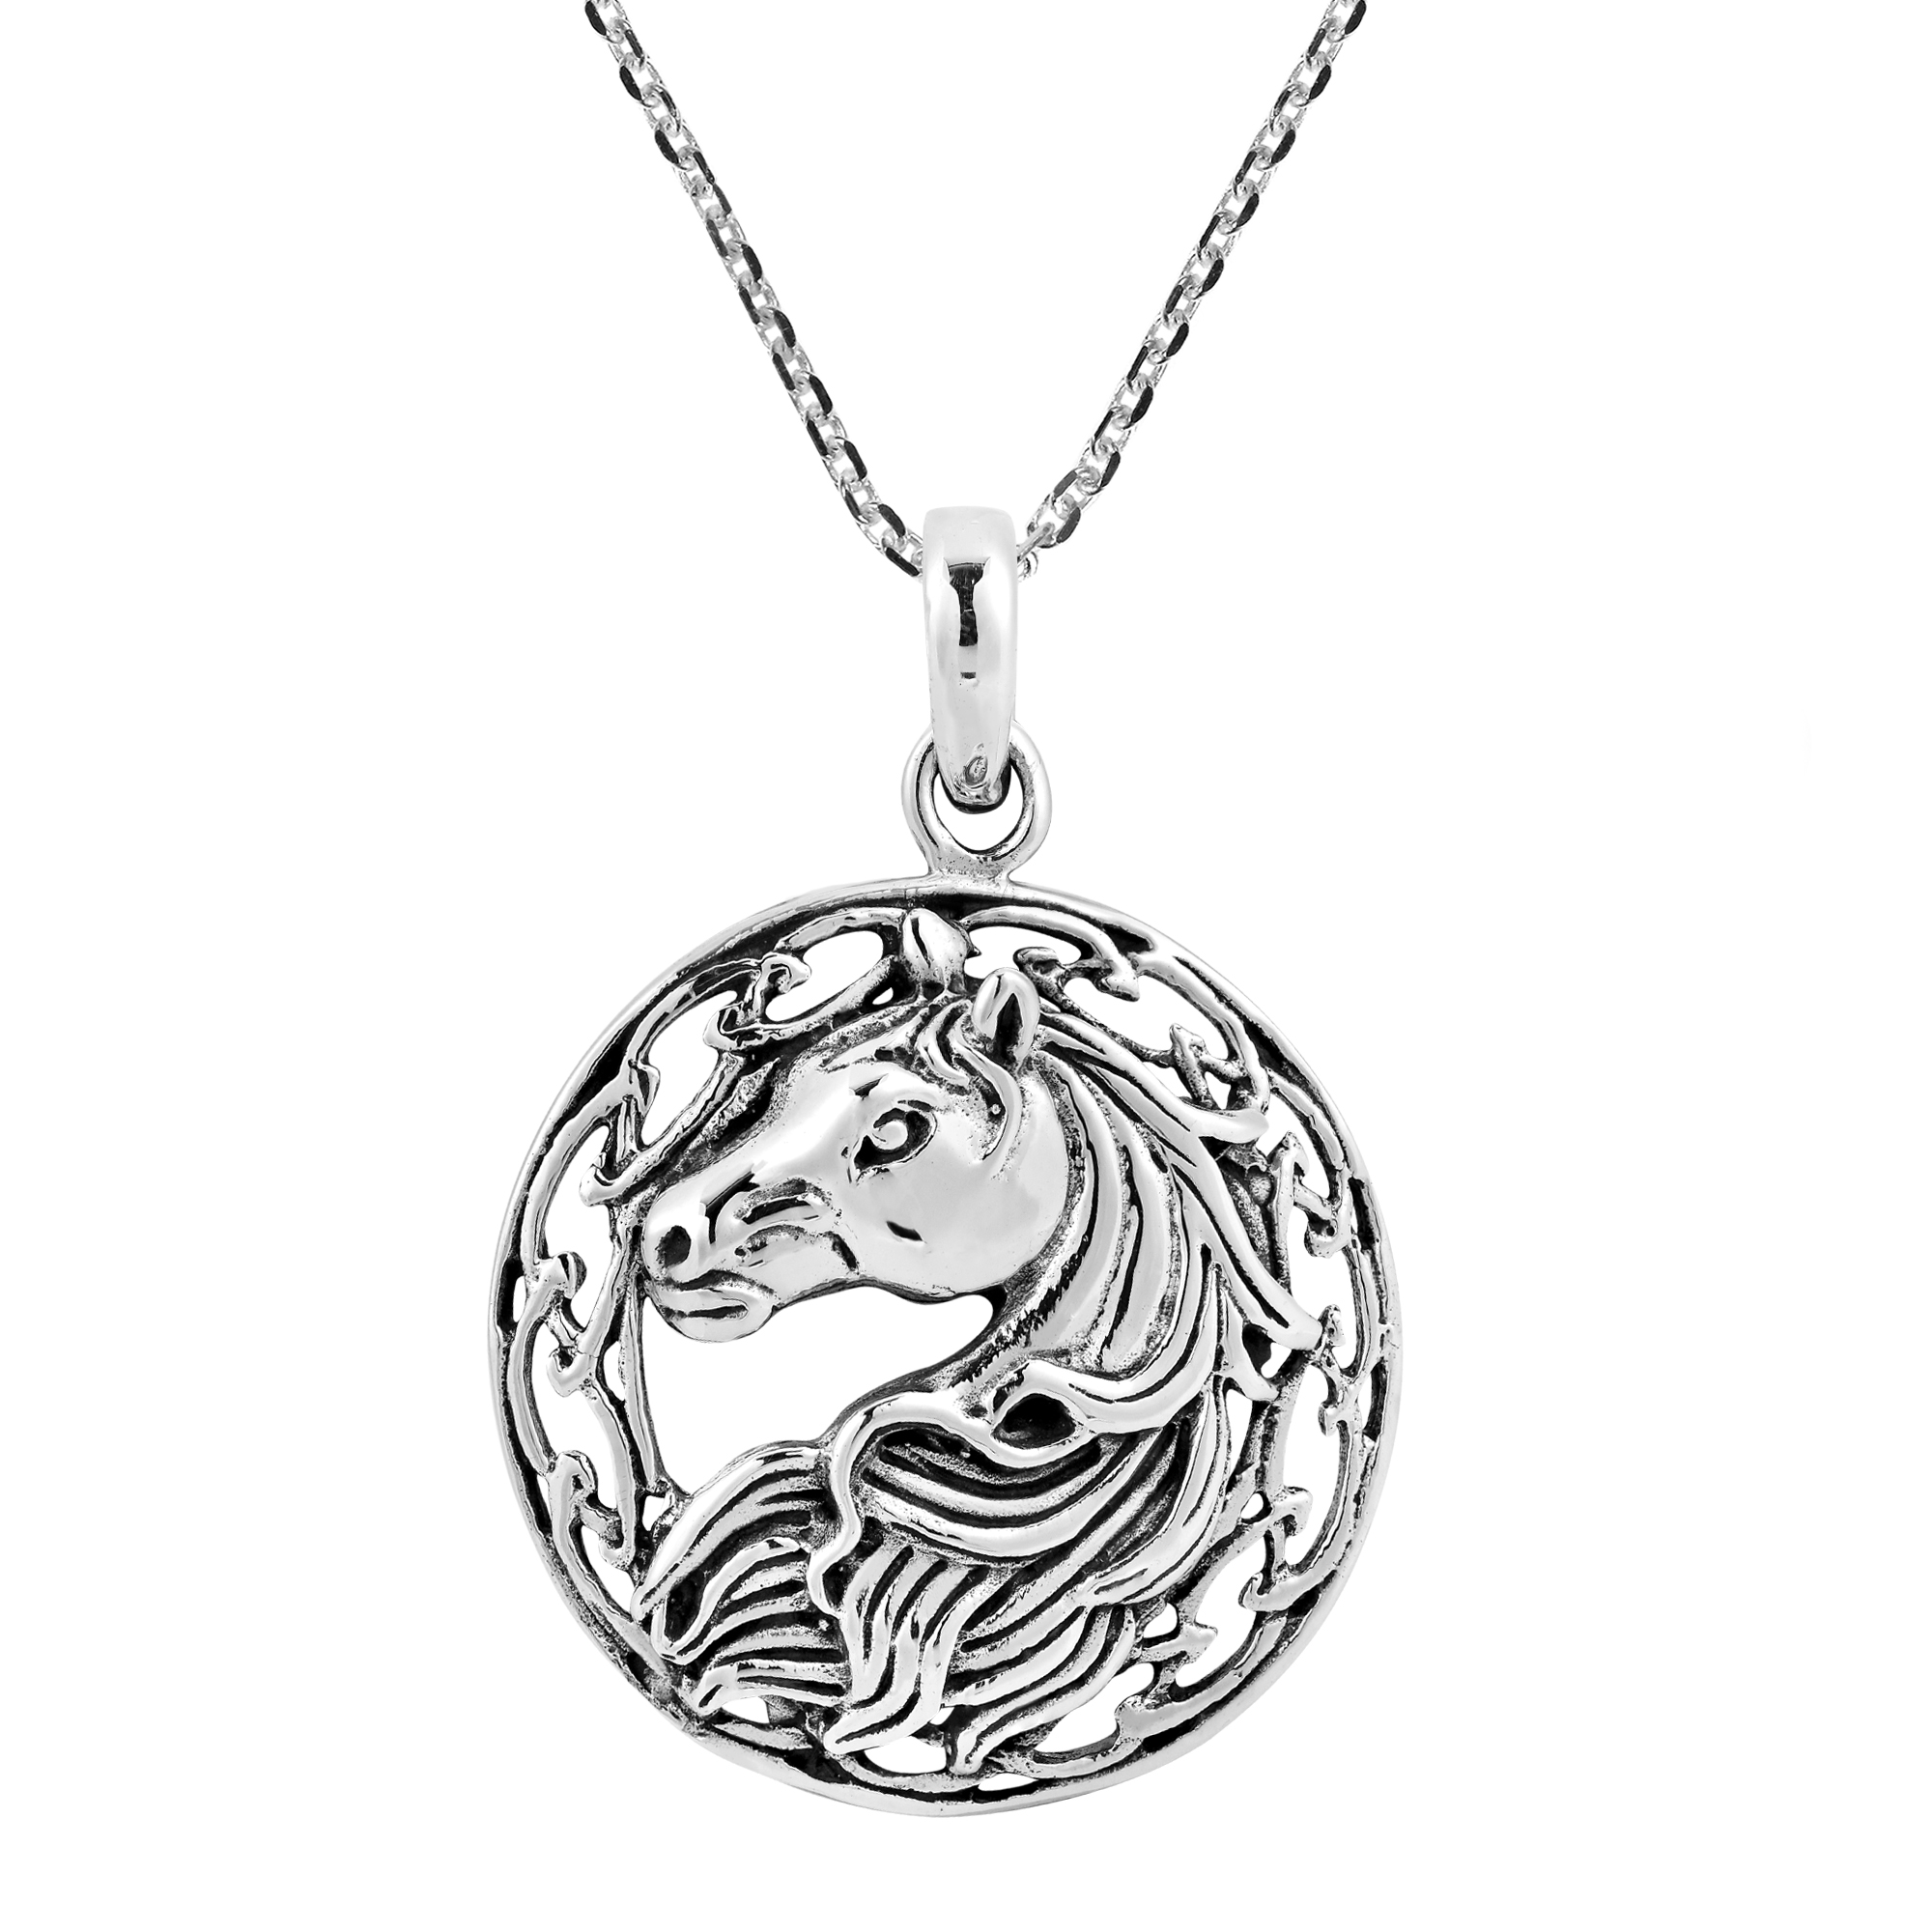 encanto shop set necklace jewellery online old locket sparkly horse